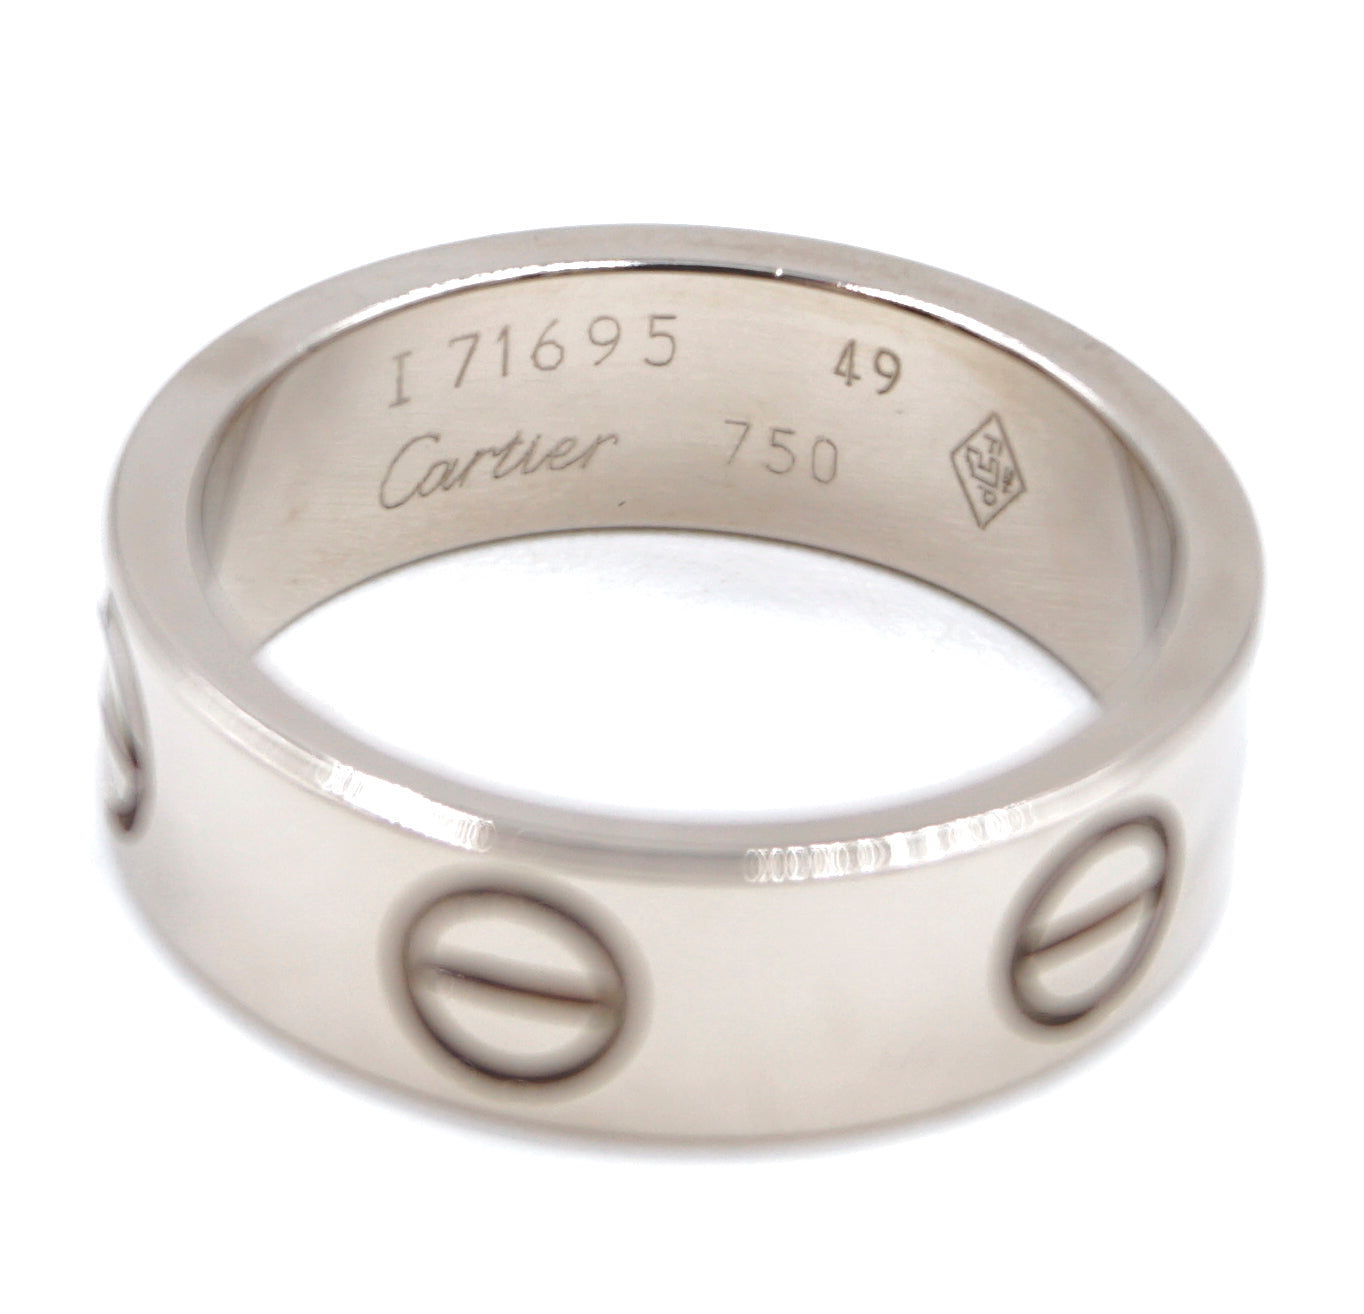 Cartier White Gold 18k 750 Love Ring Size 49